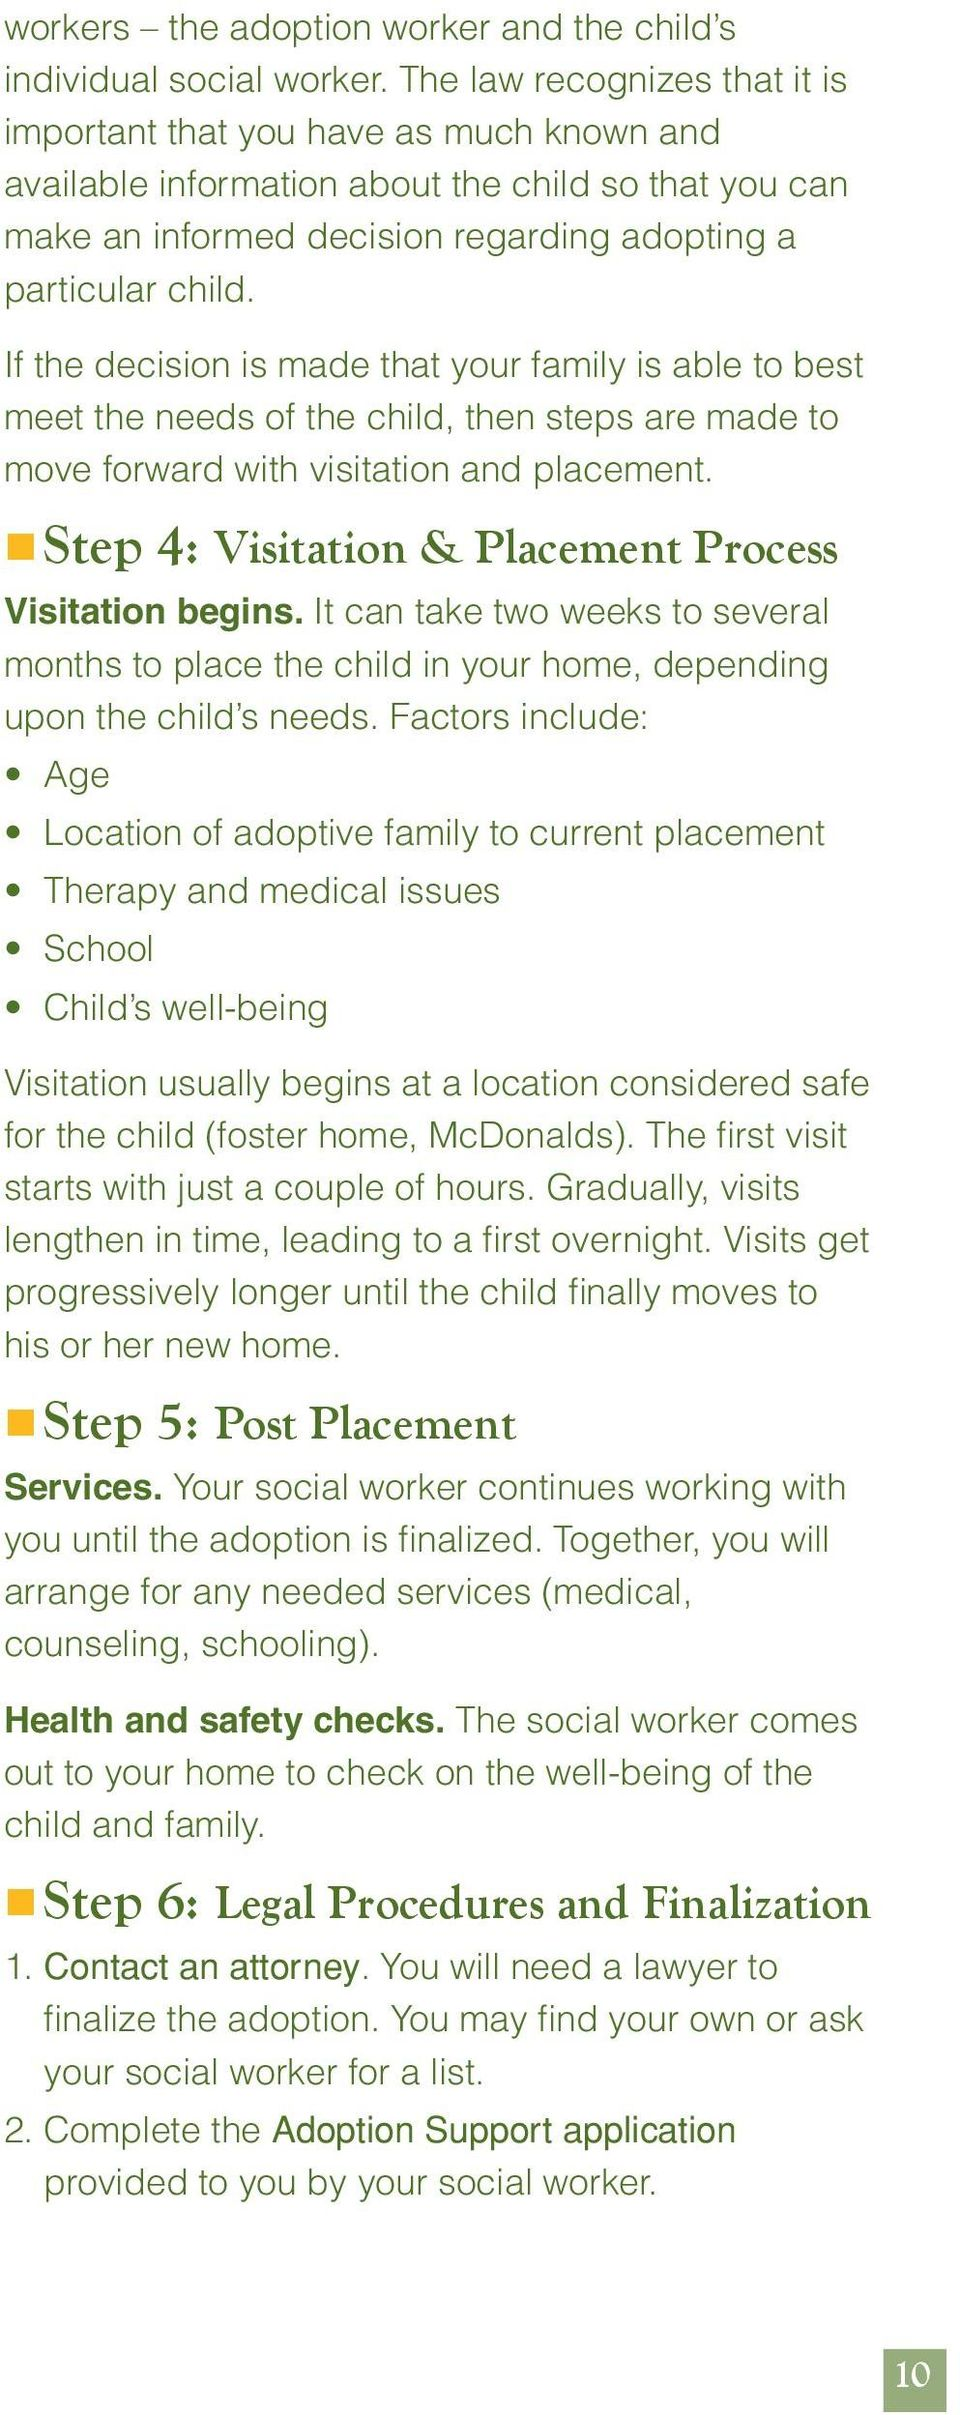 If the decision is made that your family is able to best meet the needs of the child, then steps are made to move forward with visitation and placement.